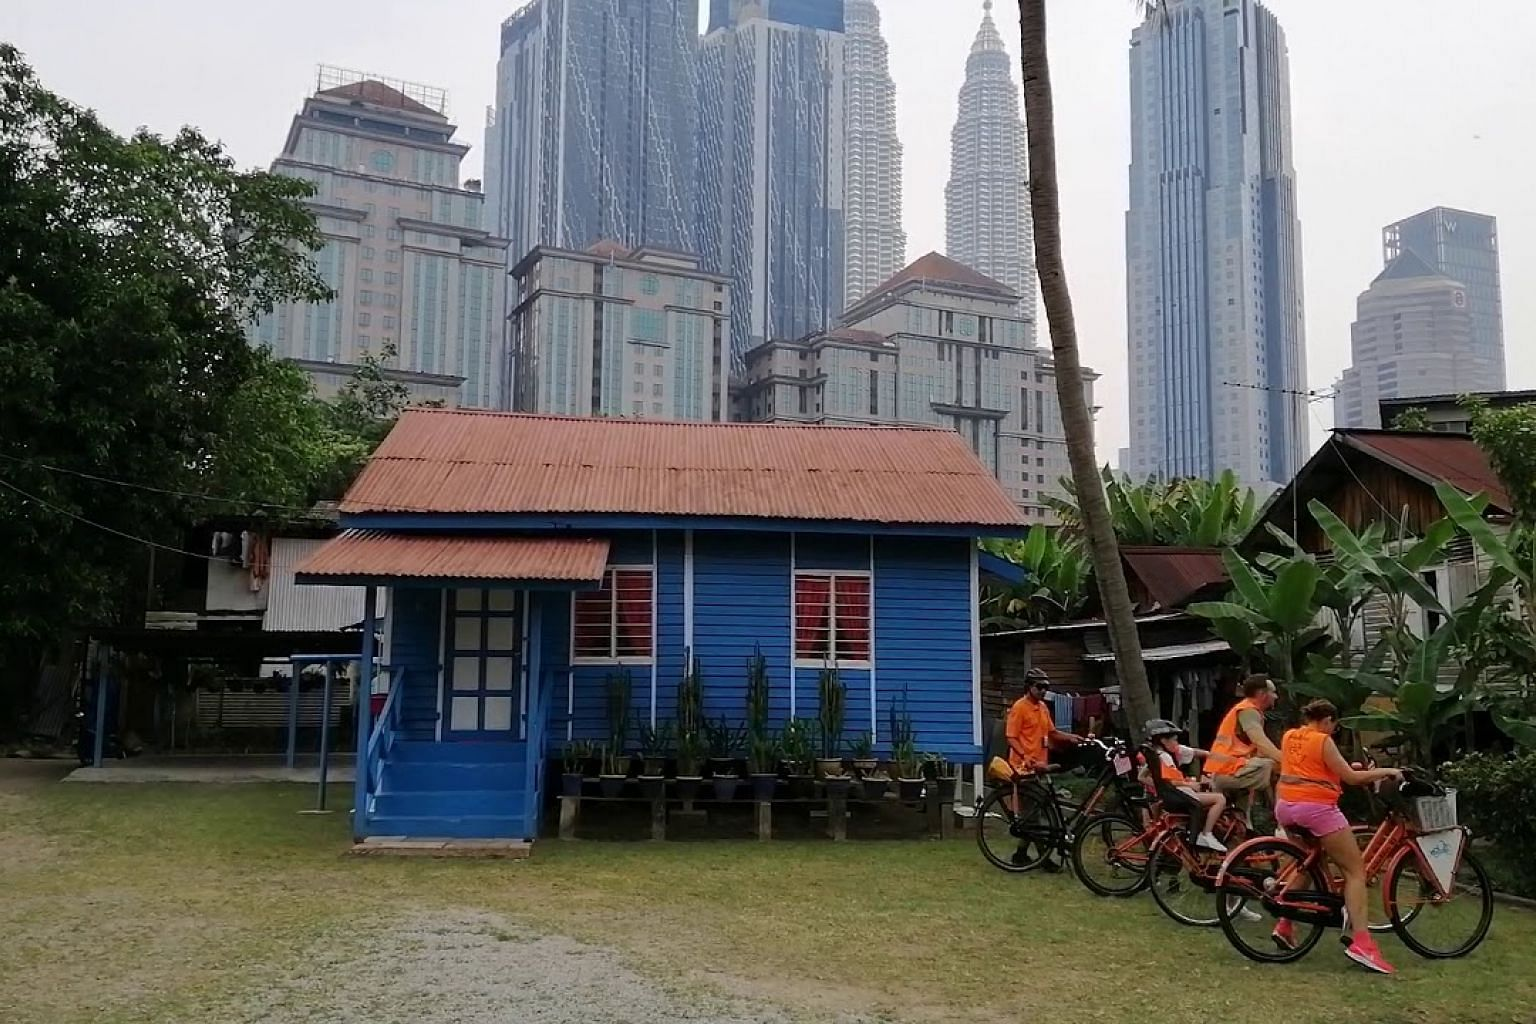 Facelift for KL's iconic 119-year old Kampung Baru?